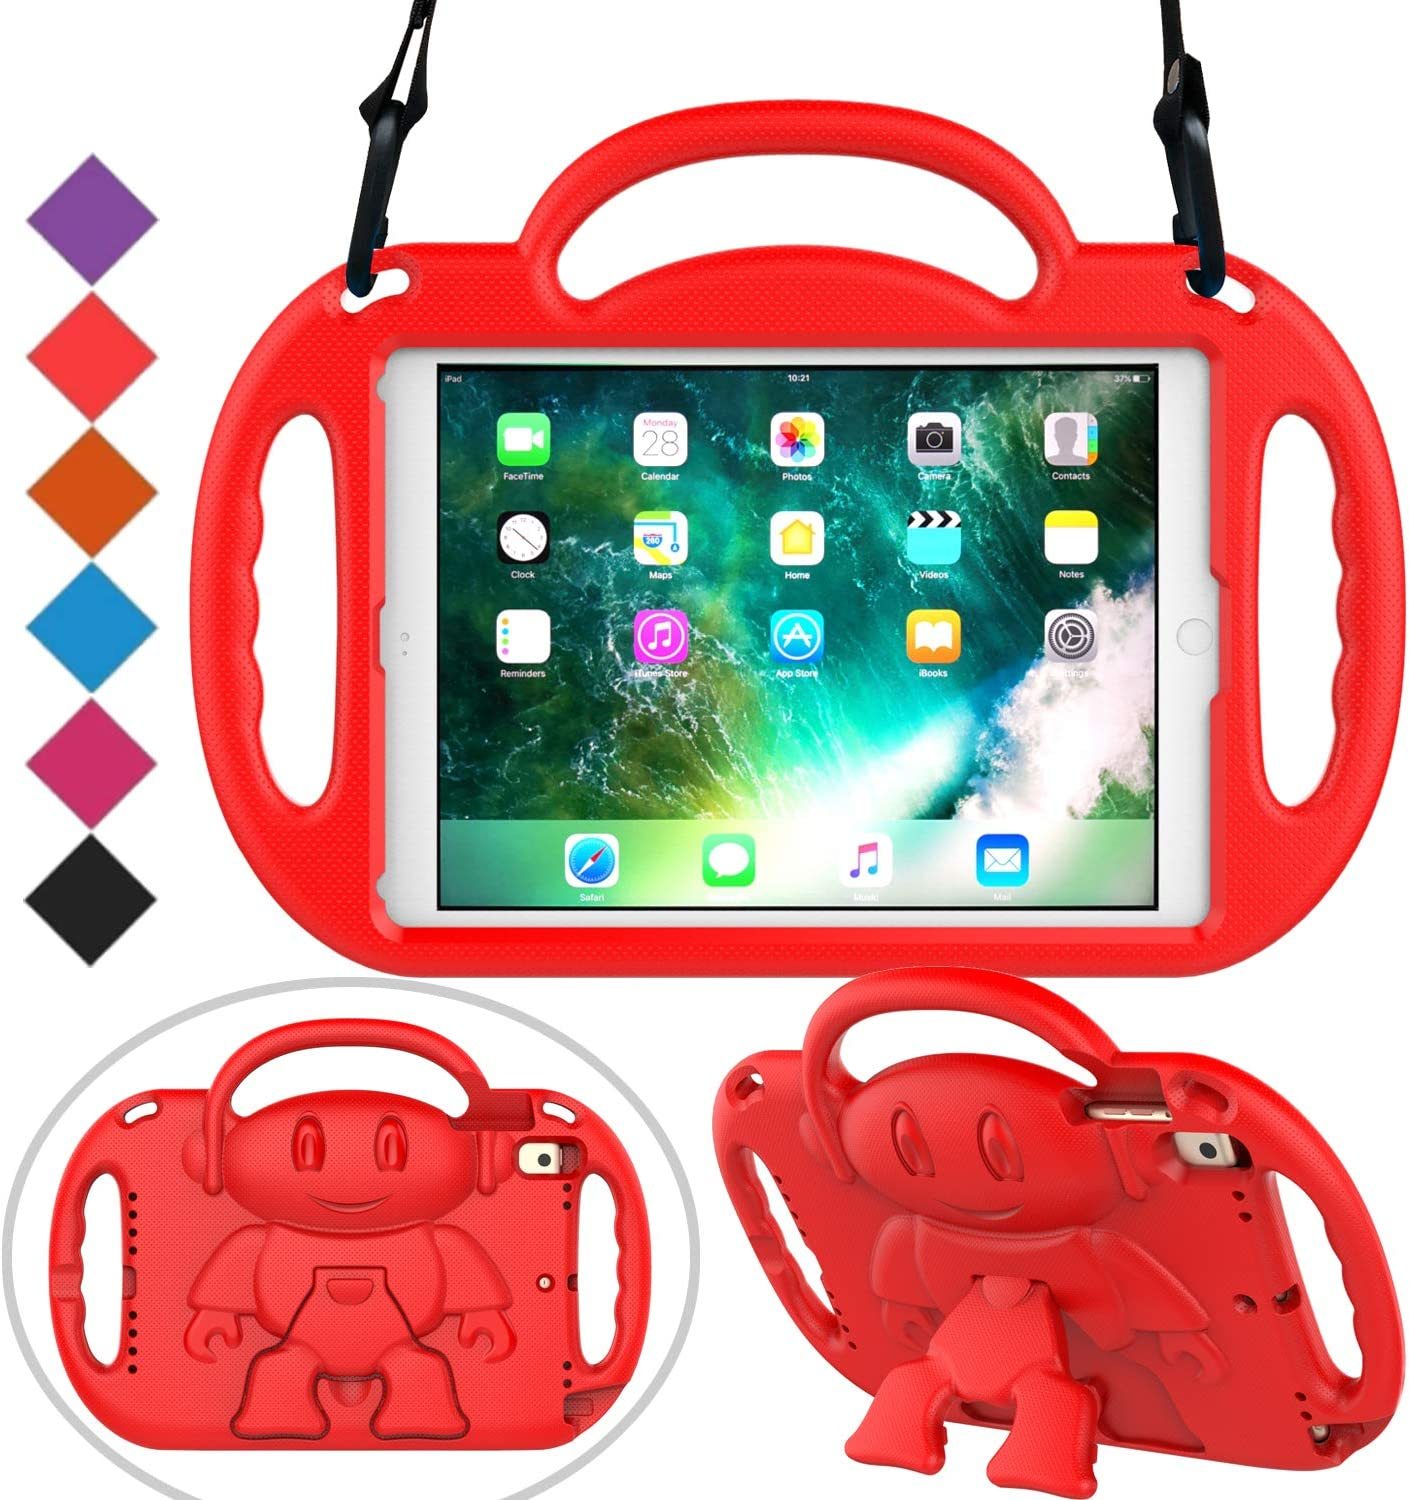 BMOUO Kids Case for New iPad 9.7 inch 2017/2018 - Shoulder Strap Shockproof Protective Handle Kickstand Case Cover for iPad 9.7 inch 2017 2018 / iPad Air/iPad Air 2 (Red)